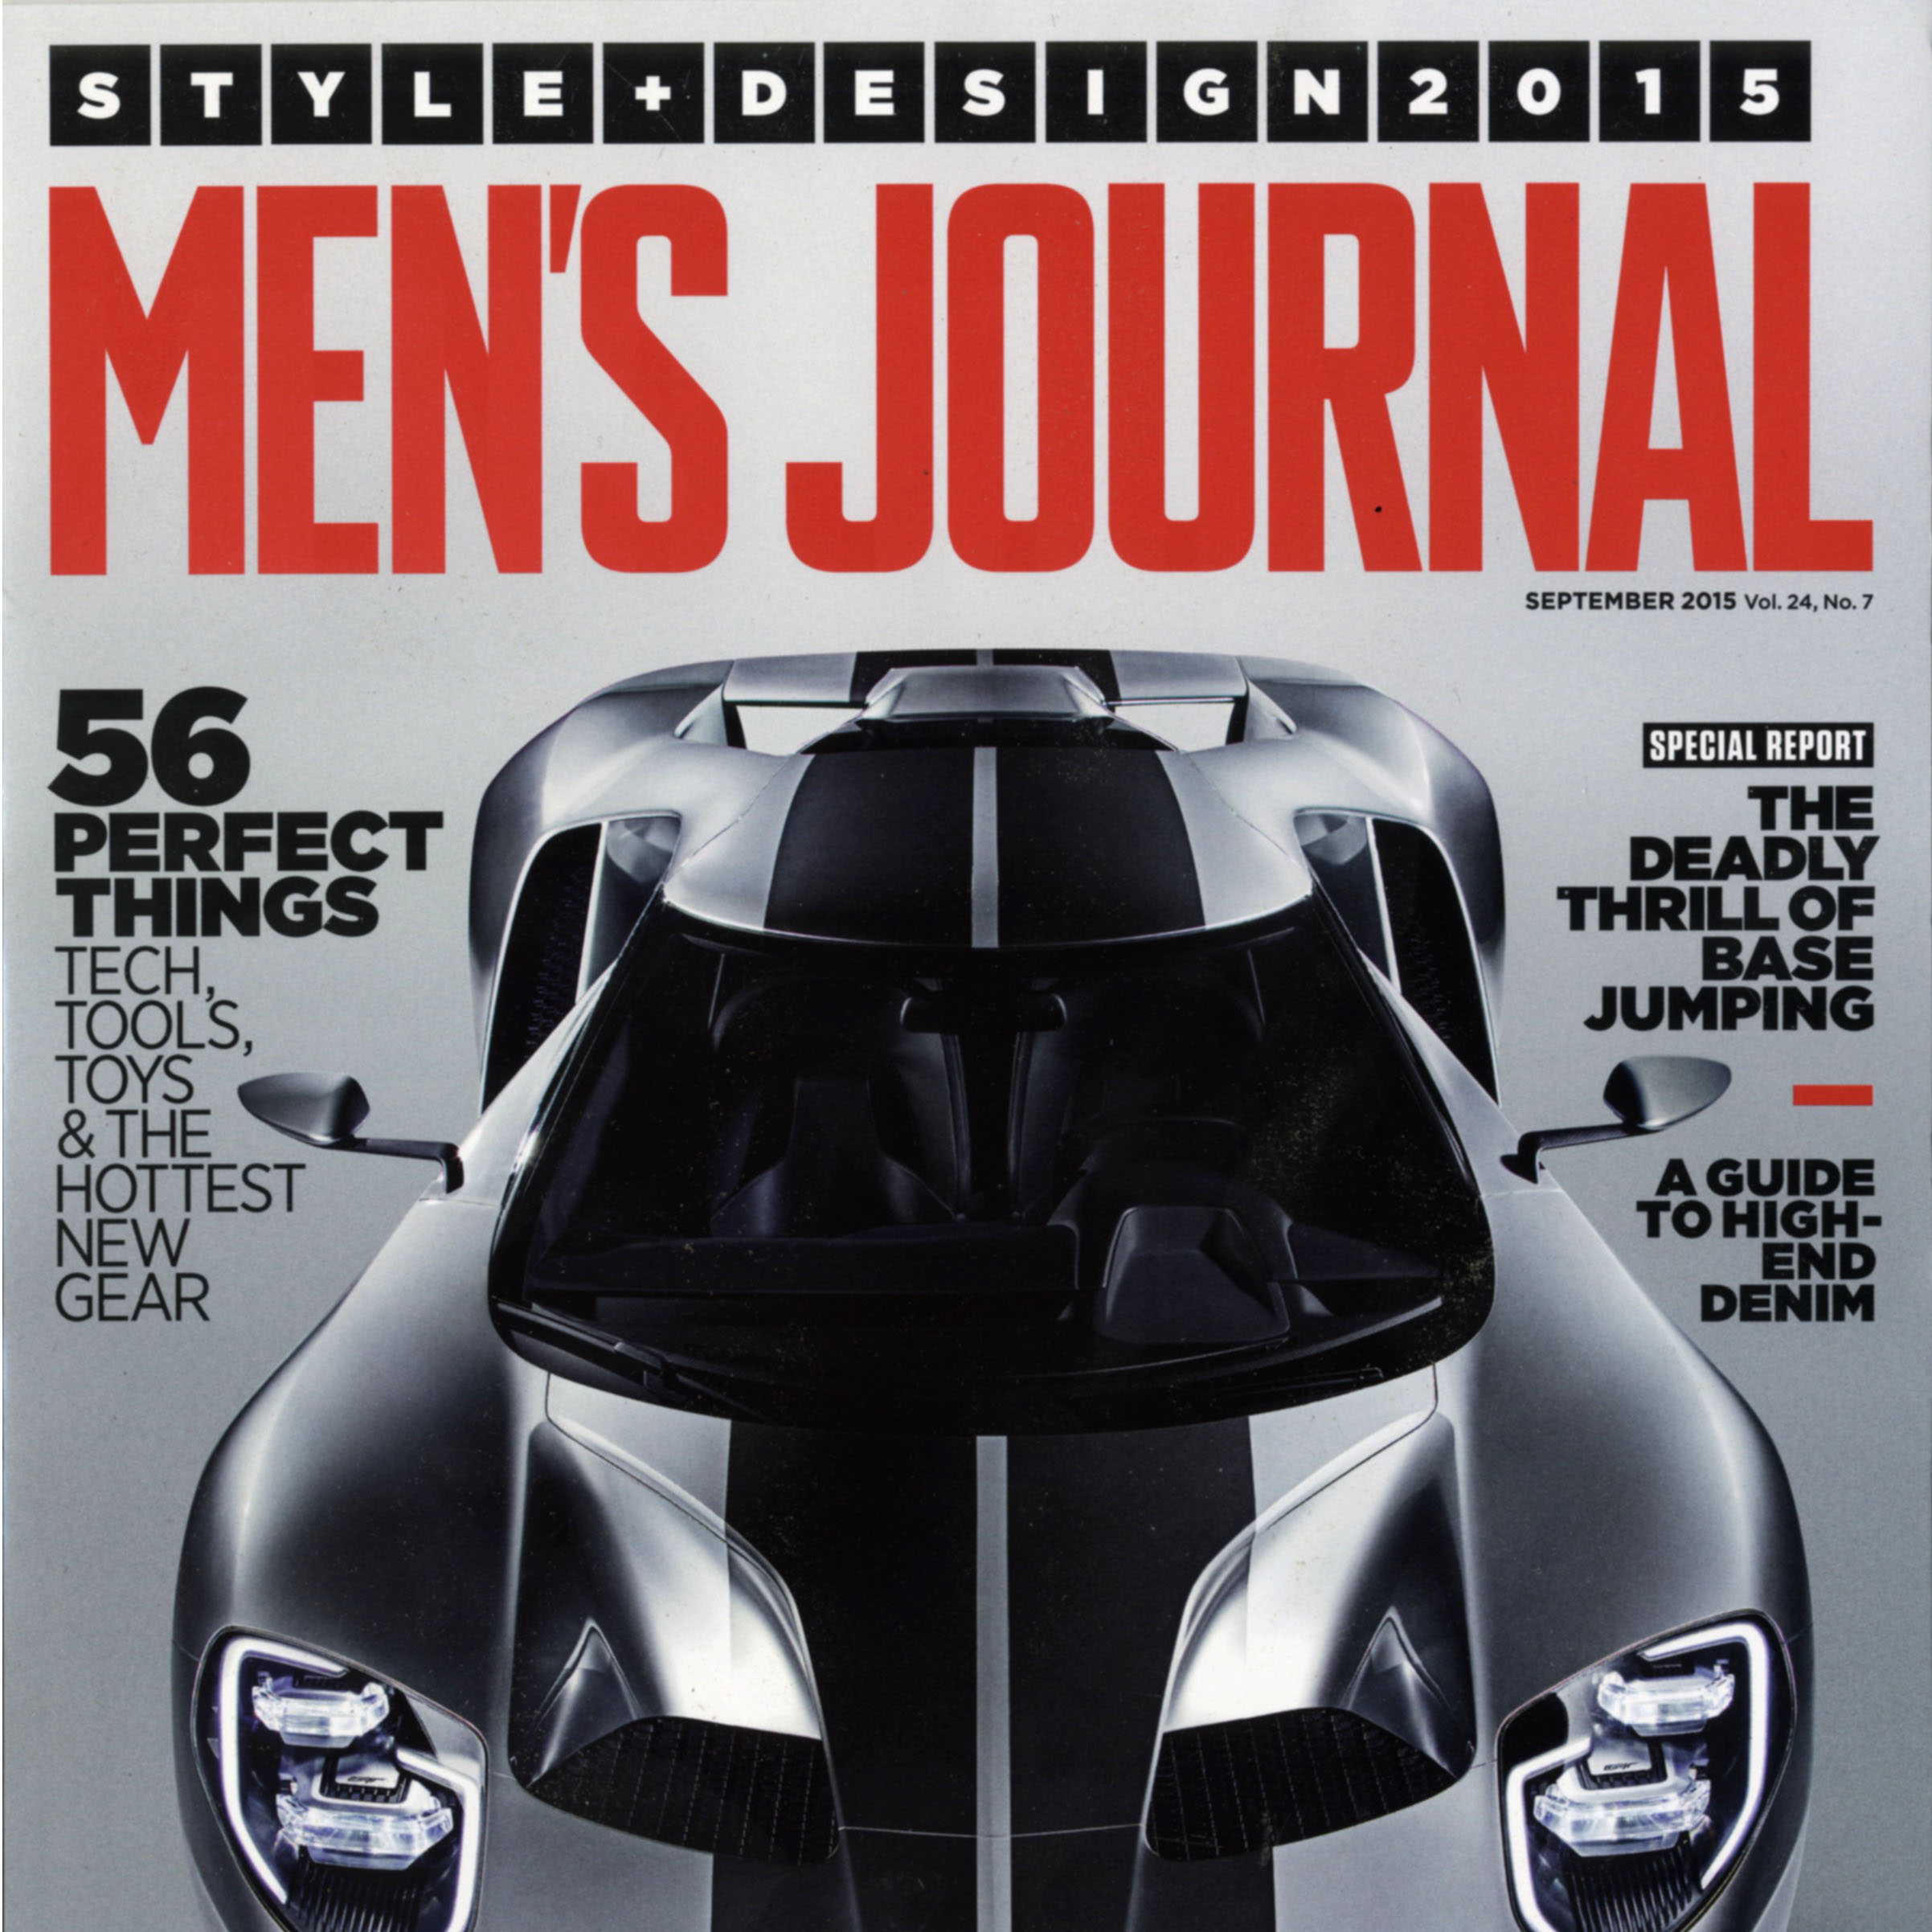 Men's Journal, Sept. 2015